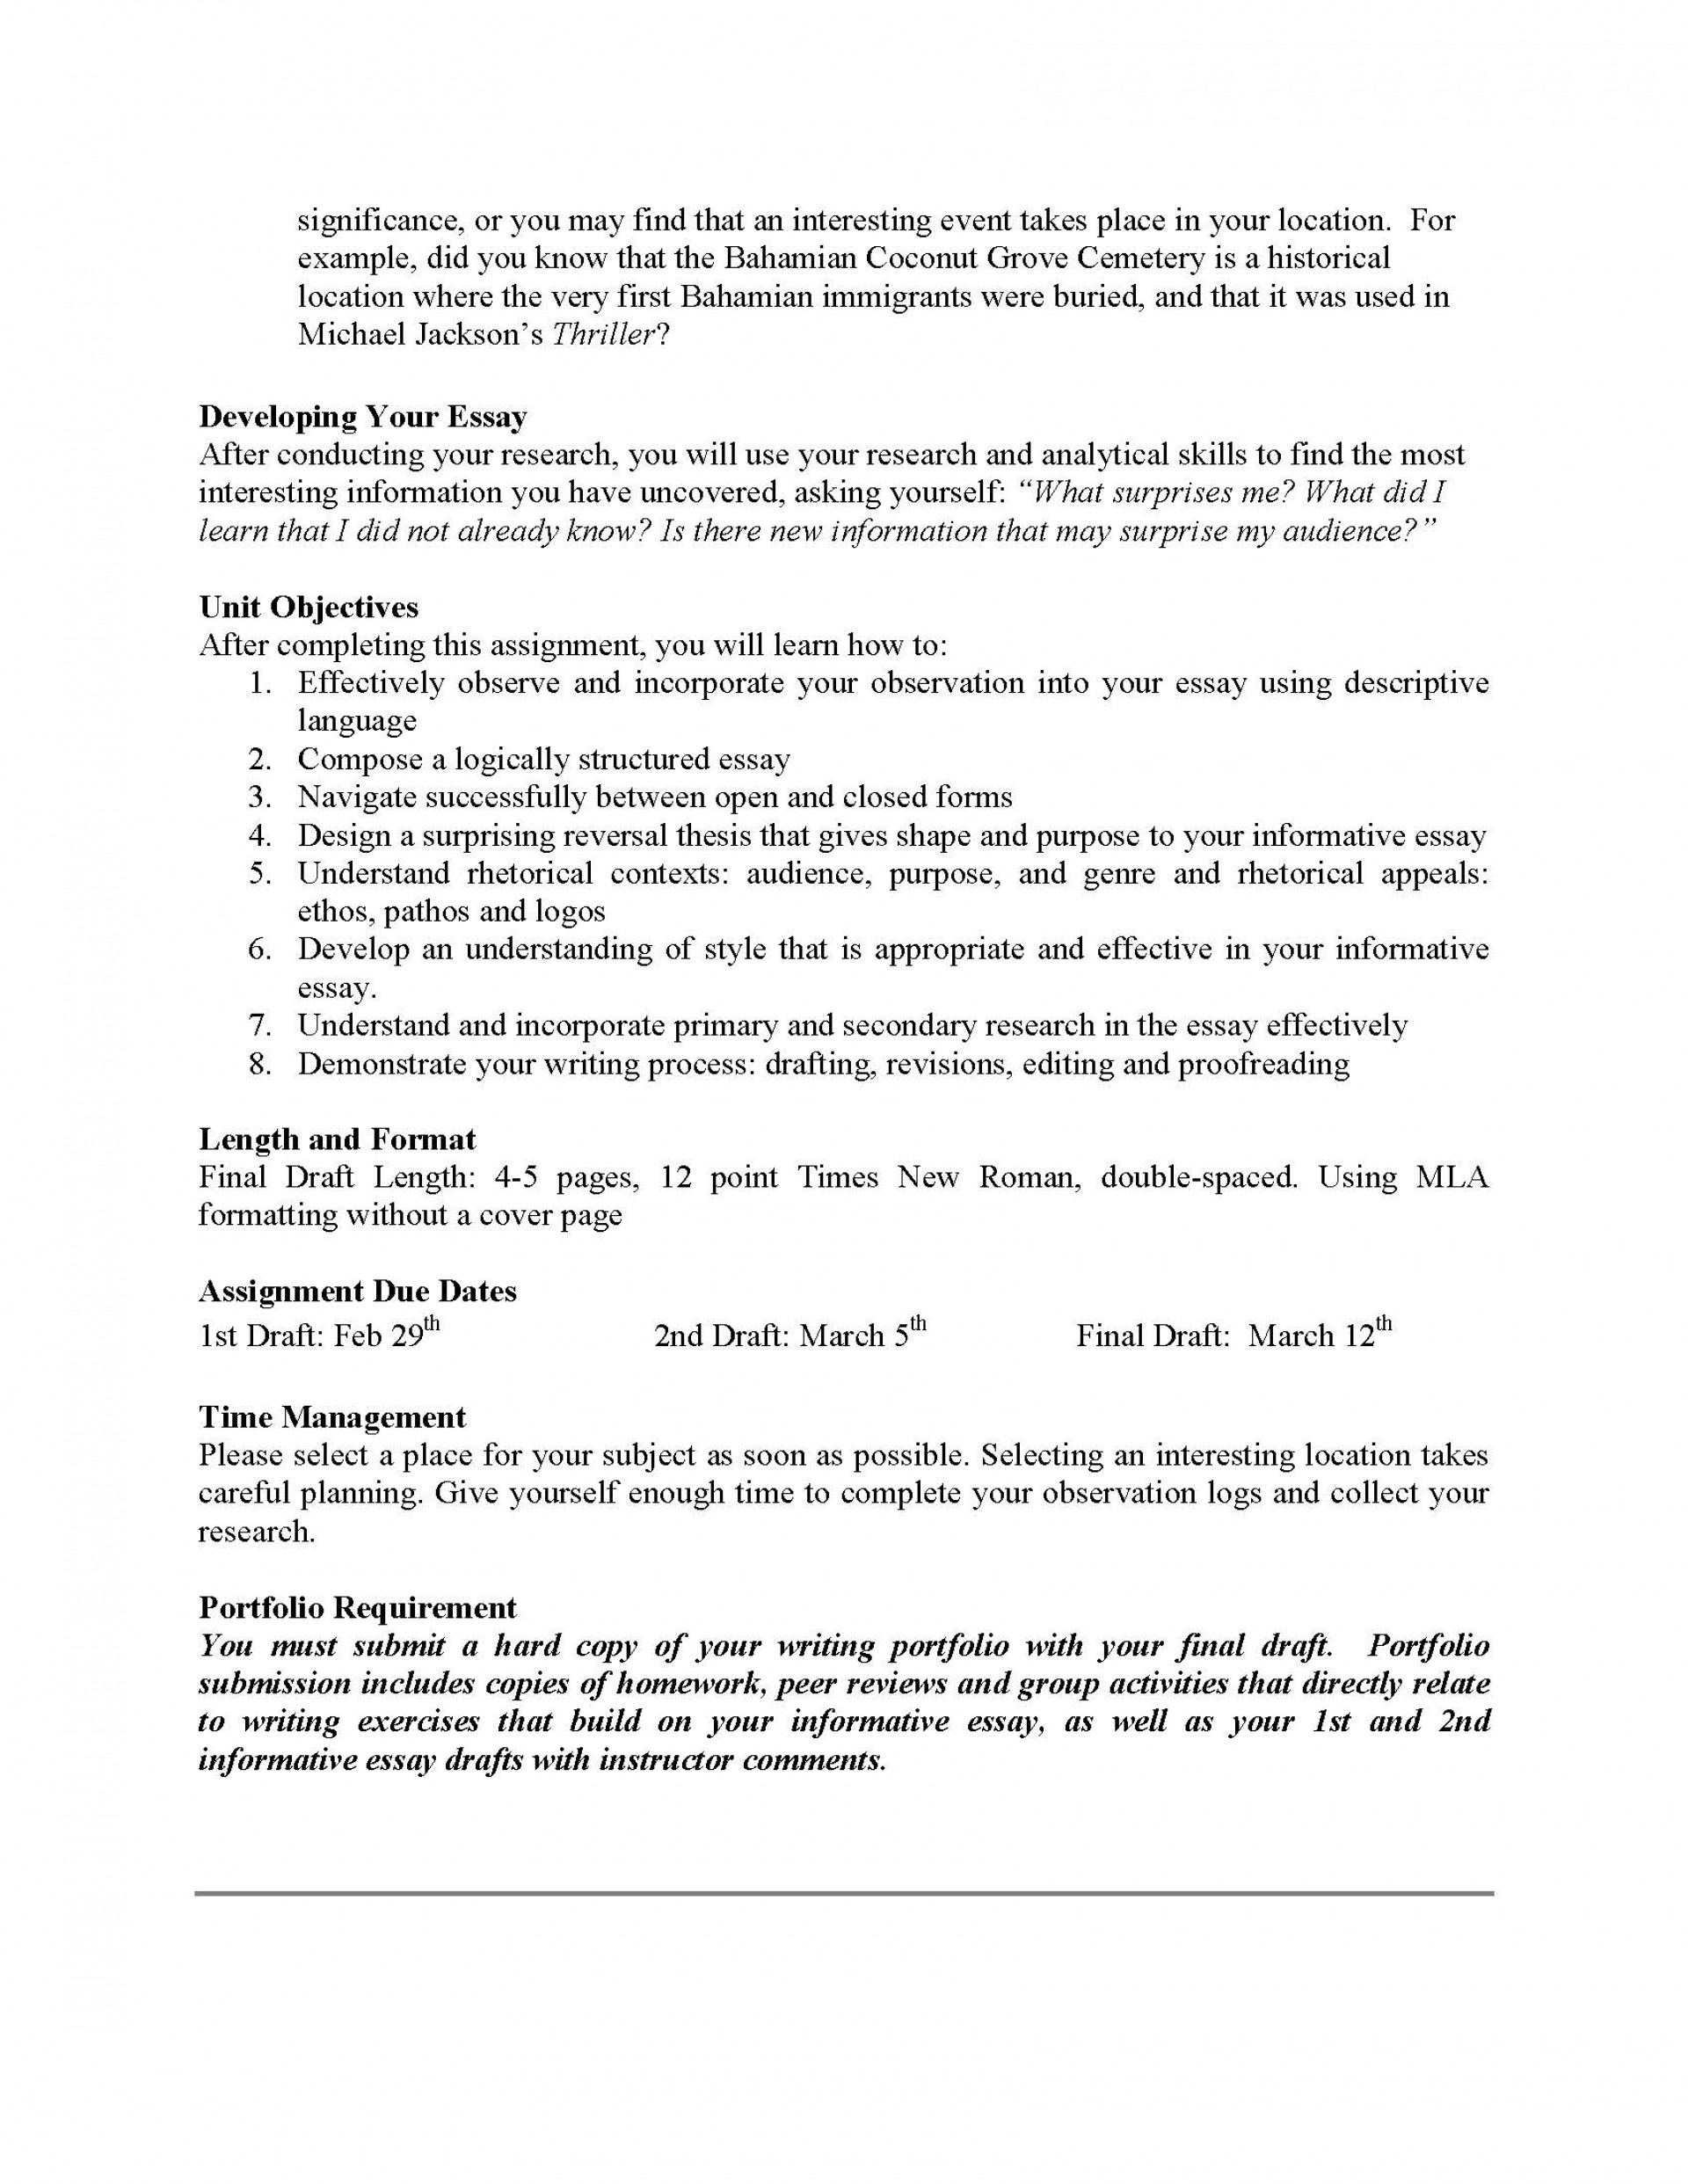 020 Essay Example Informative Unit Assignment Page 2 Unforgettable Outline 5th Grade Examples 1920